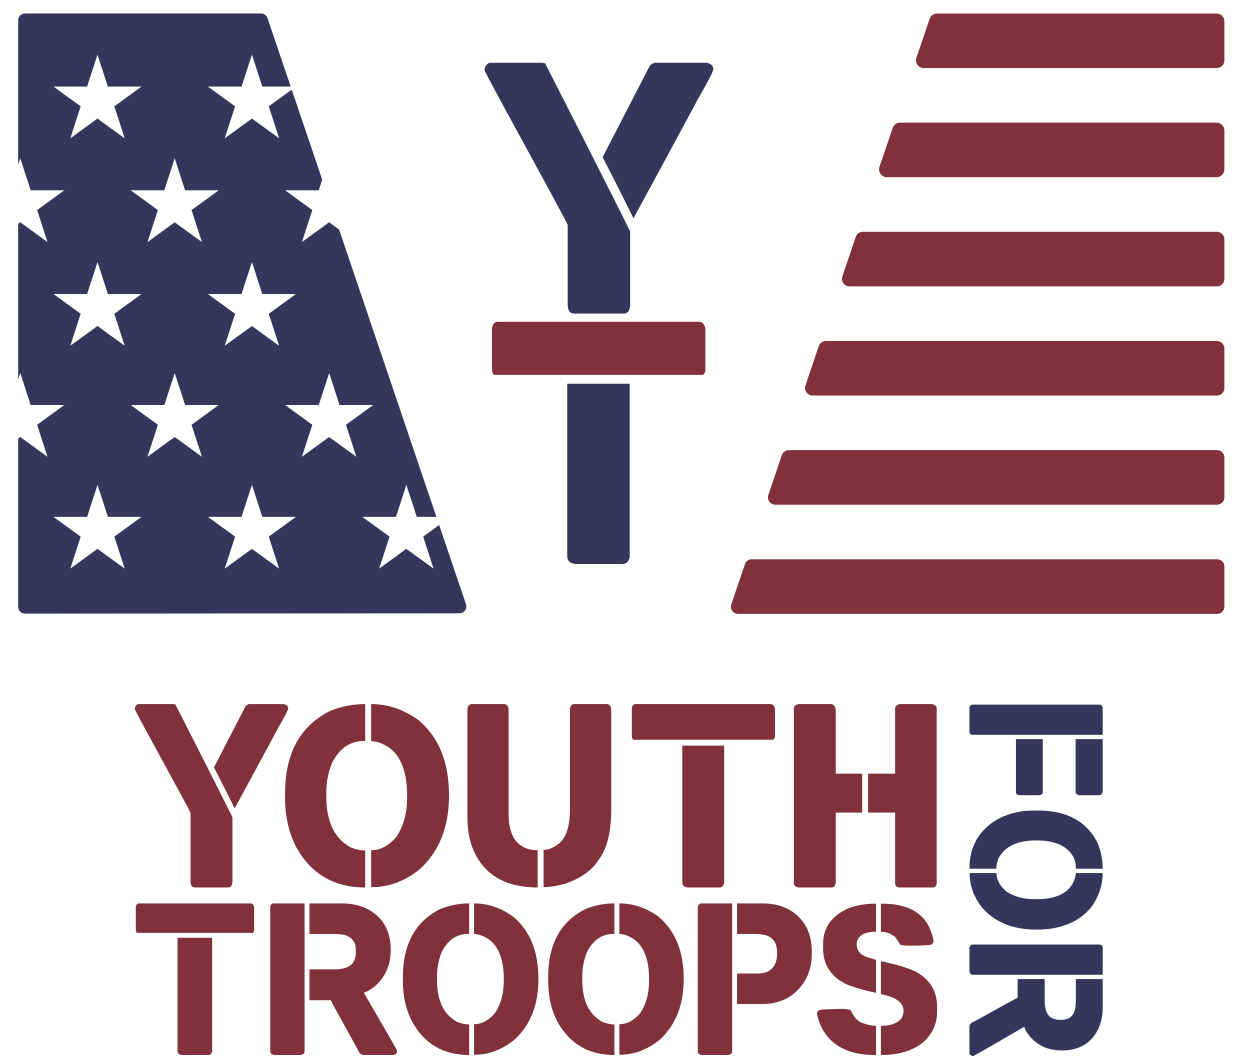 Youth For Troops